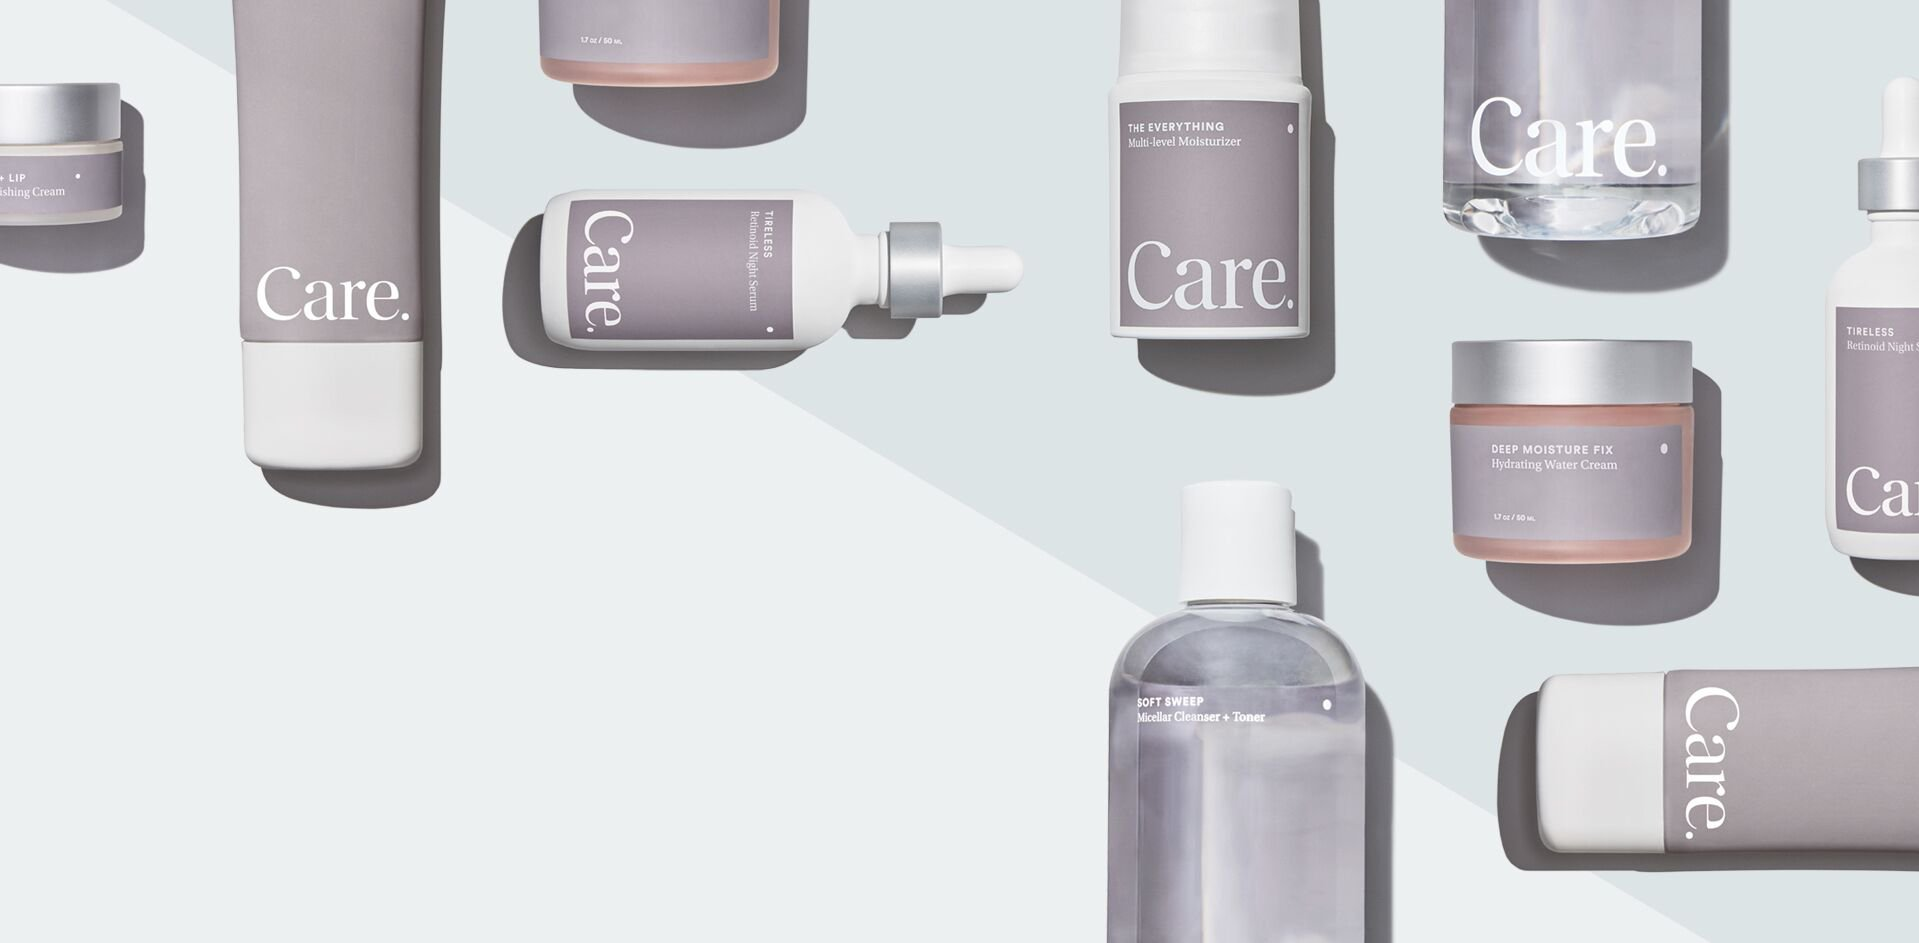 Former Estée Lauder Exec Ricardo Quintero Launches DTC Brand Incubator Digital Brands With Skincare Line Care